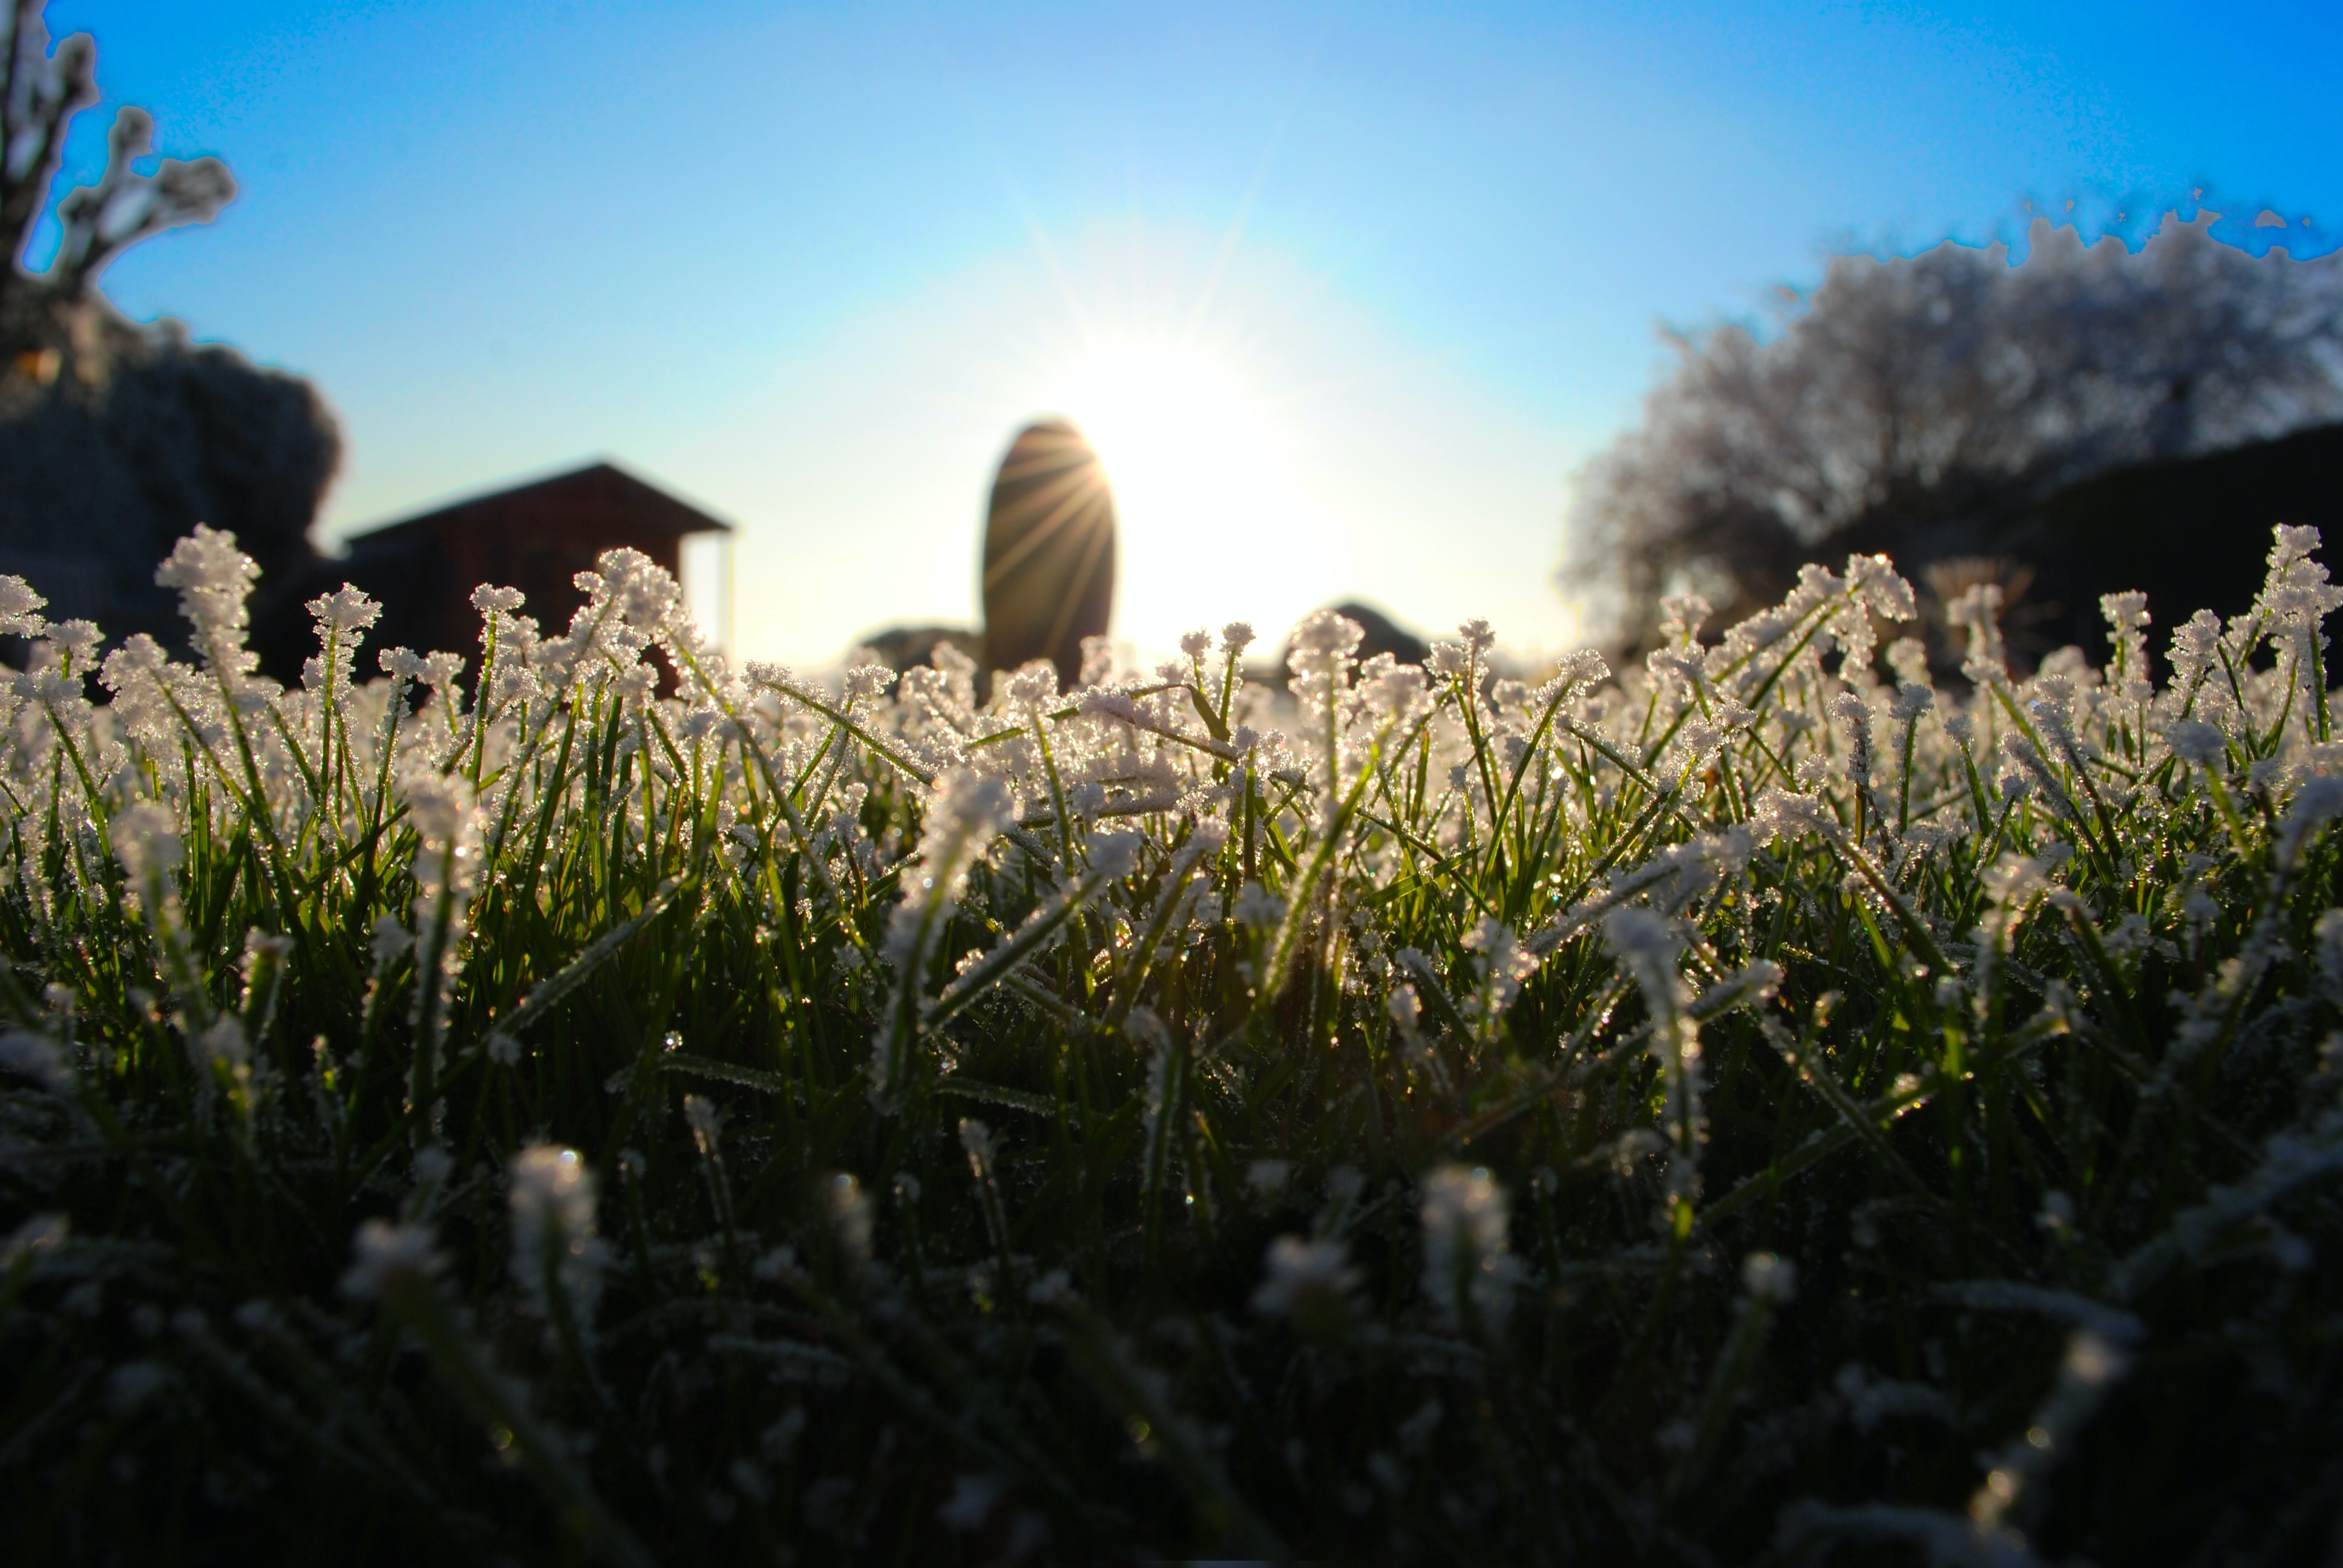 A low shot of a patch of white-flowered grass with sun shining above